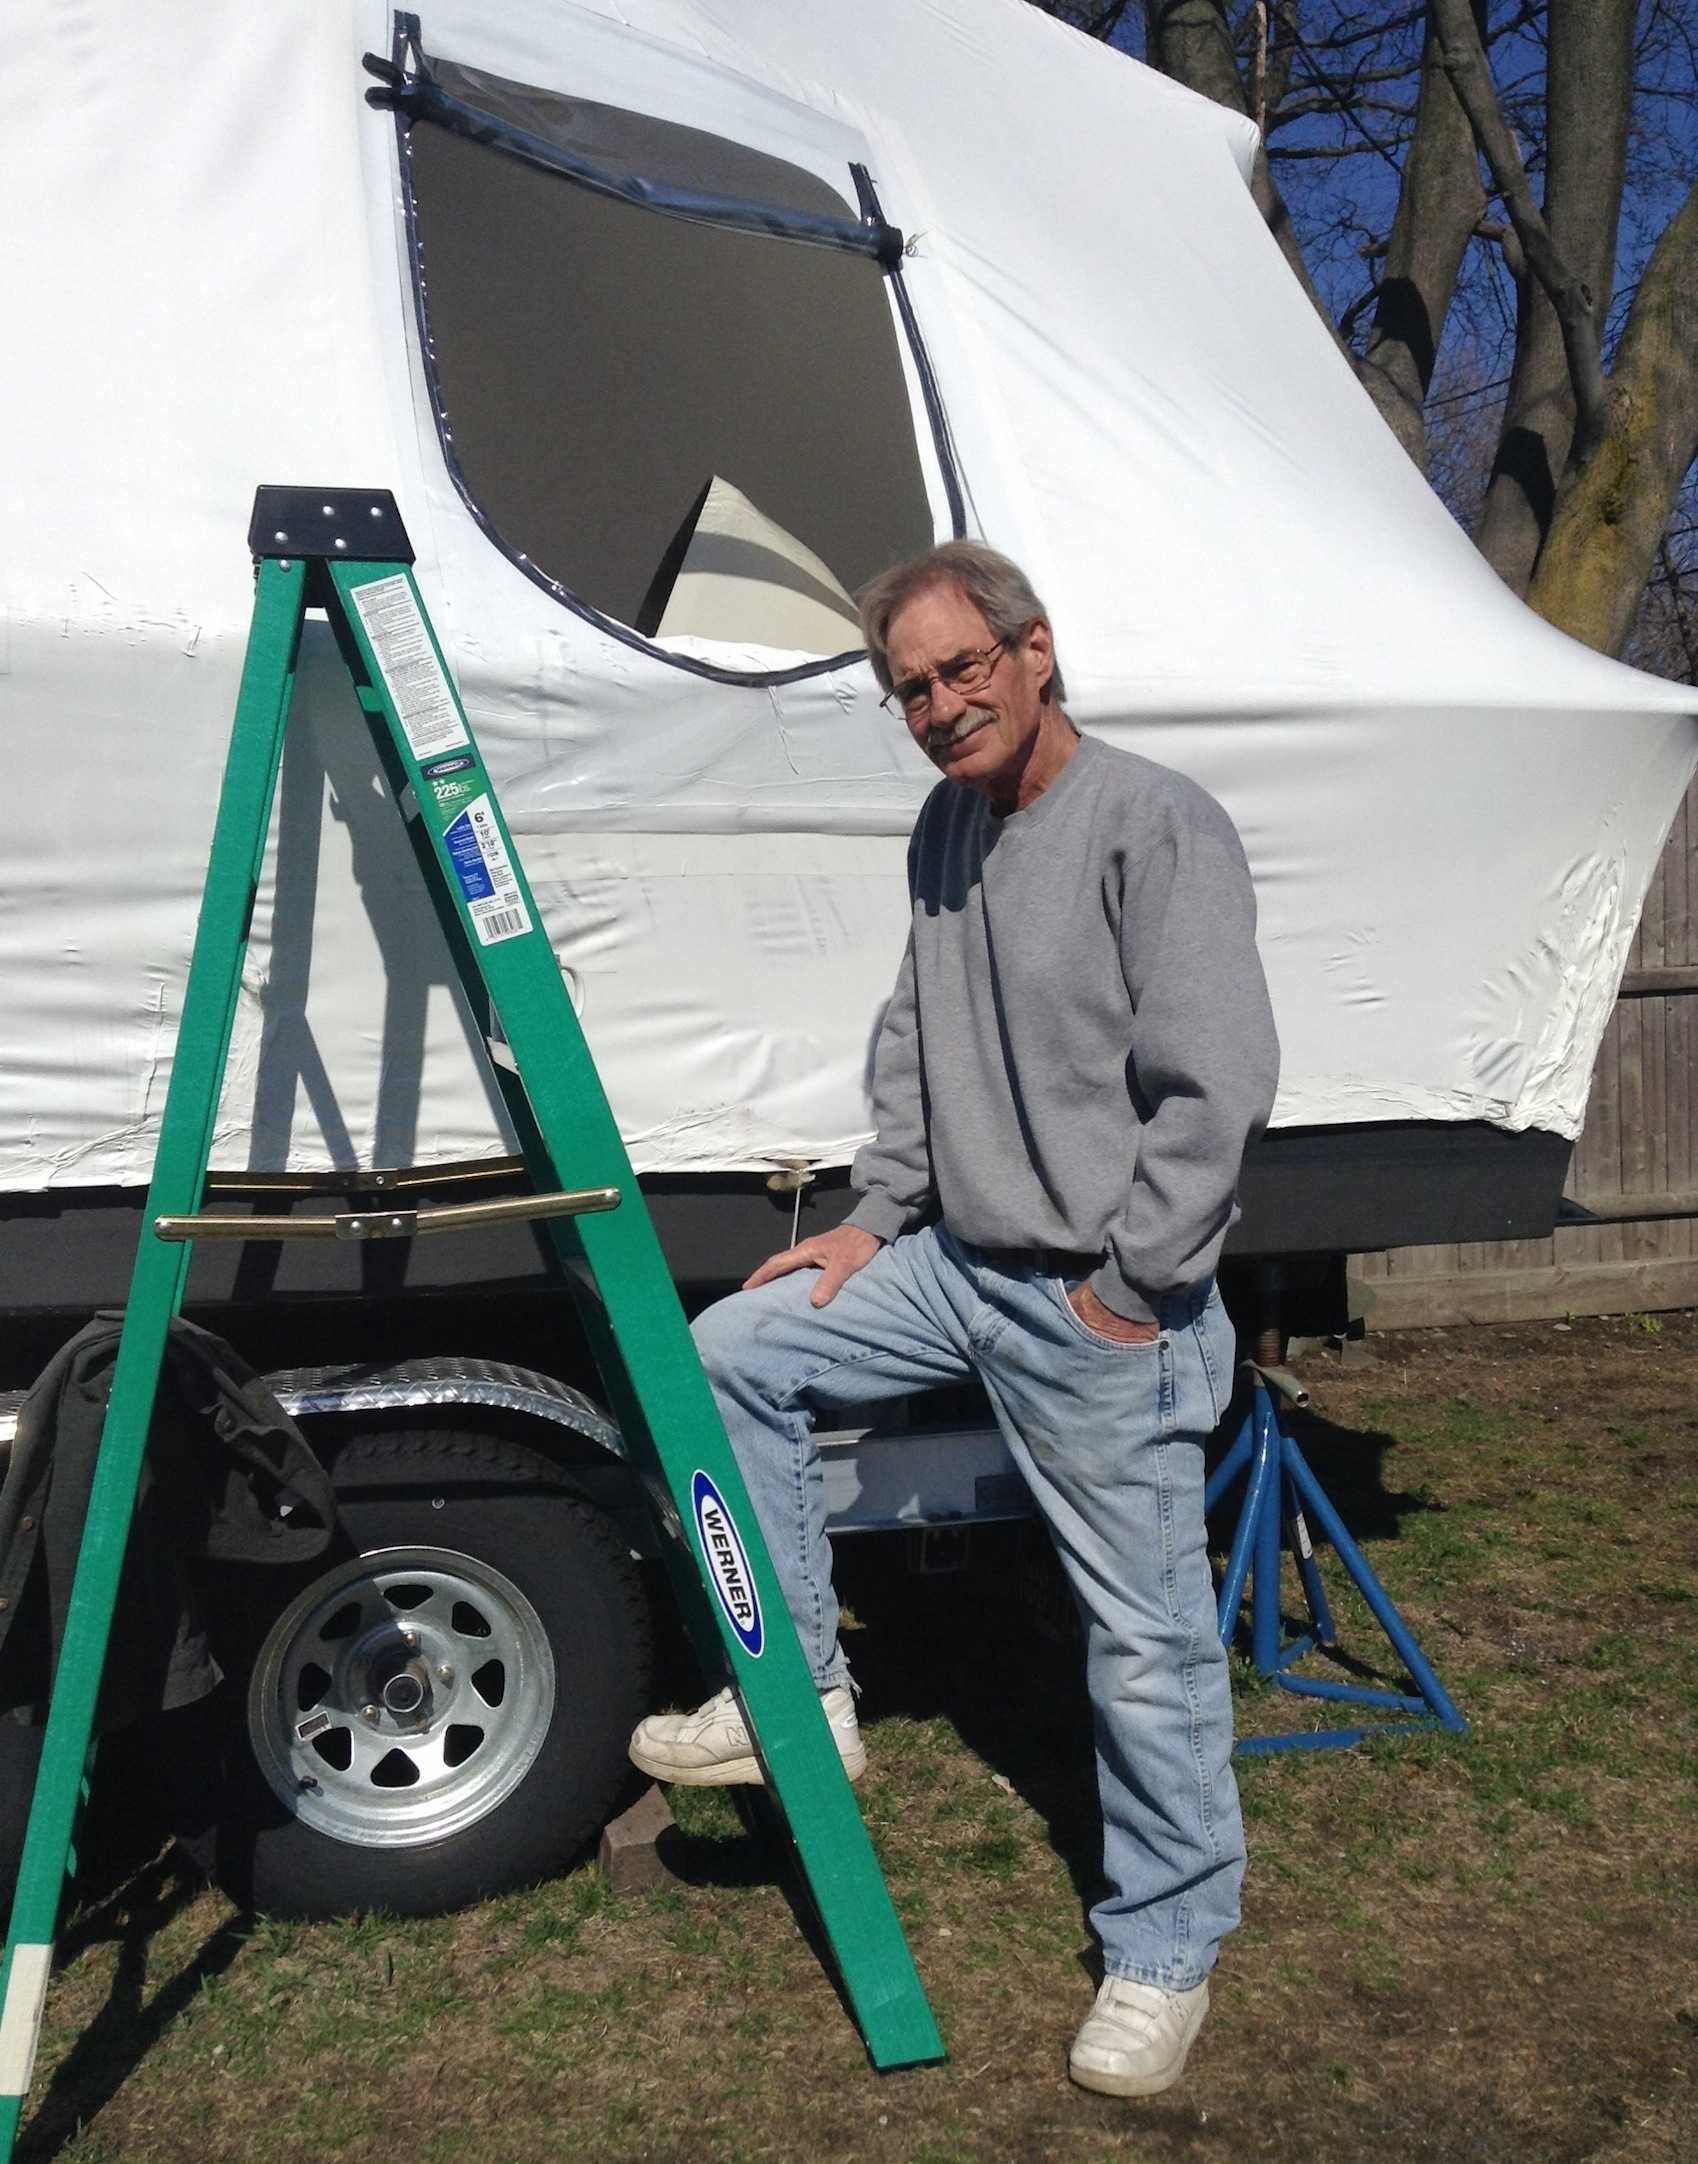 In an exclusive photo to the Watertown Splash, a resident of Franklin Street in Watertown poses with his new boat in April 2014.